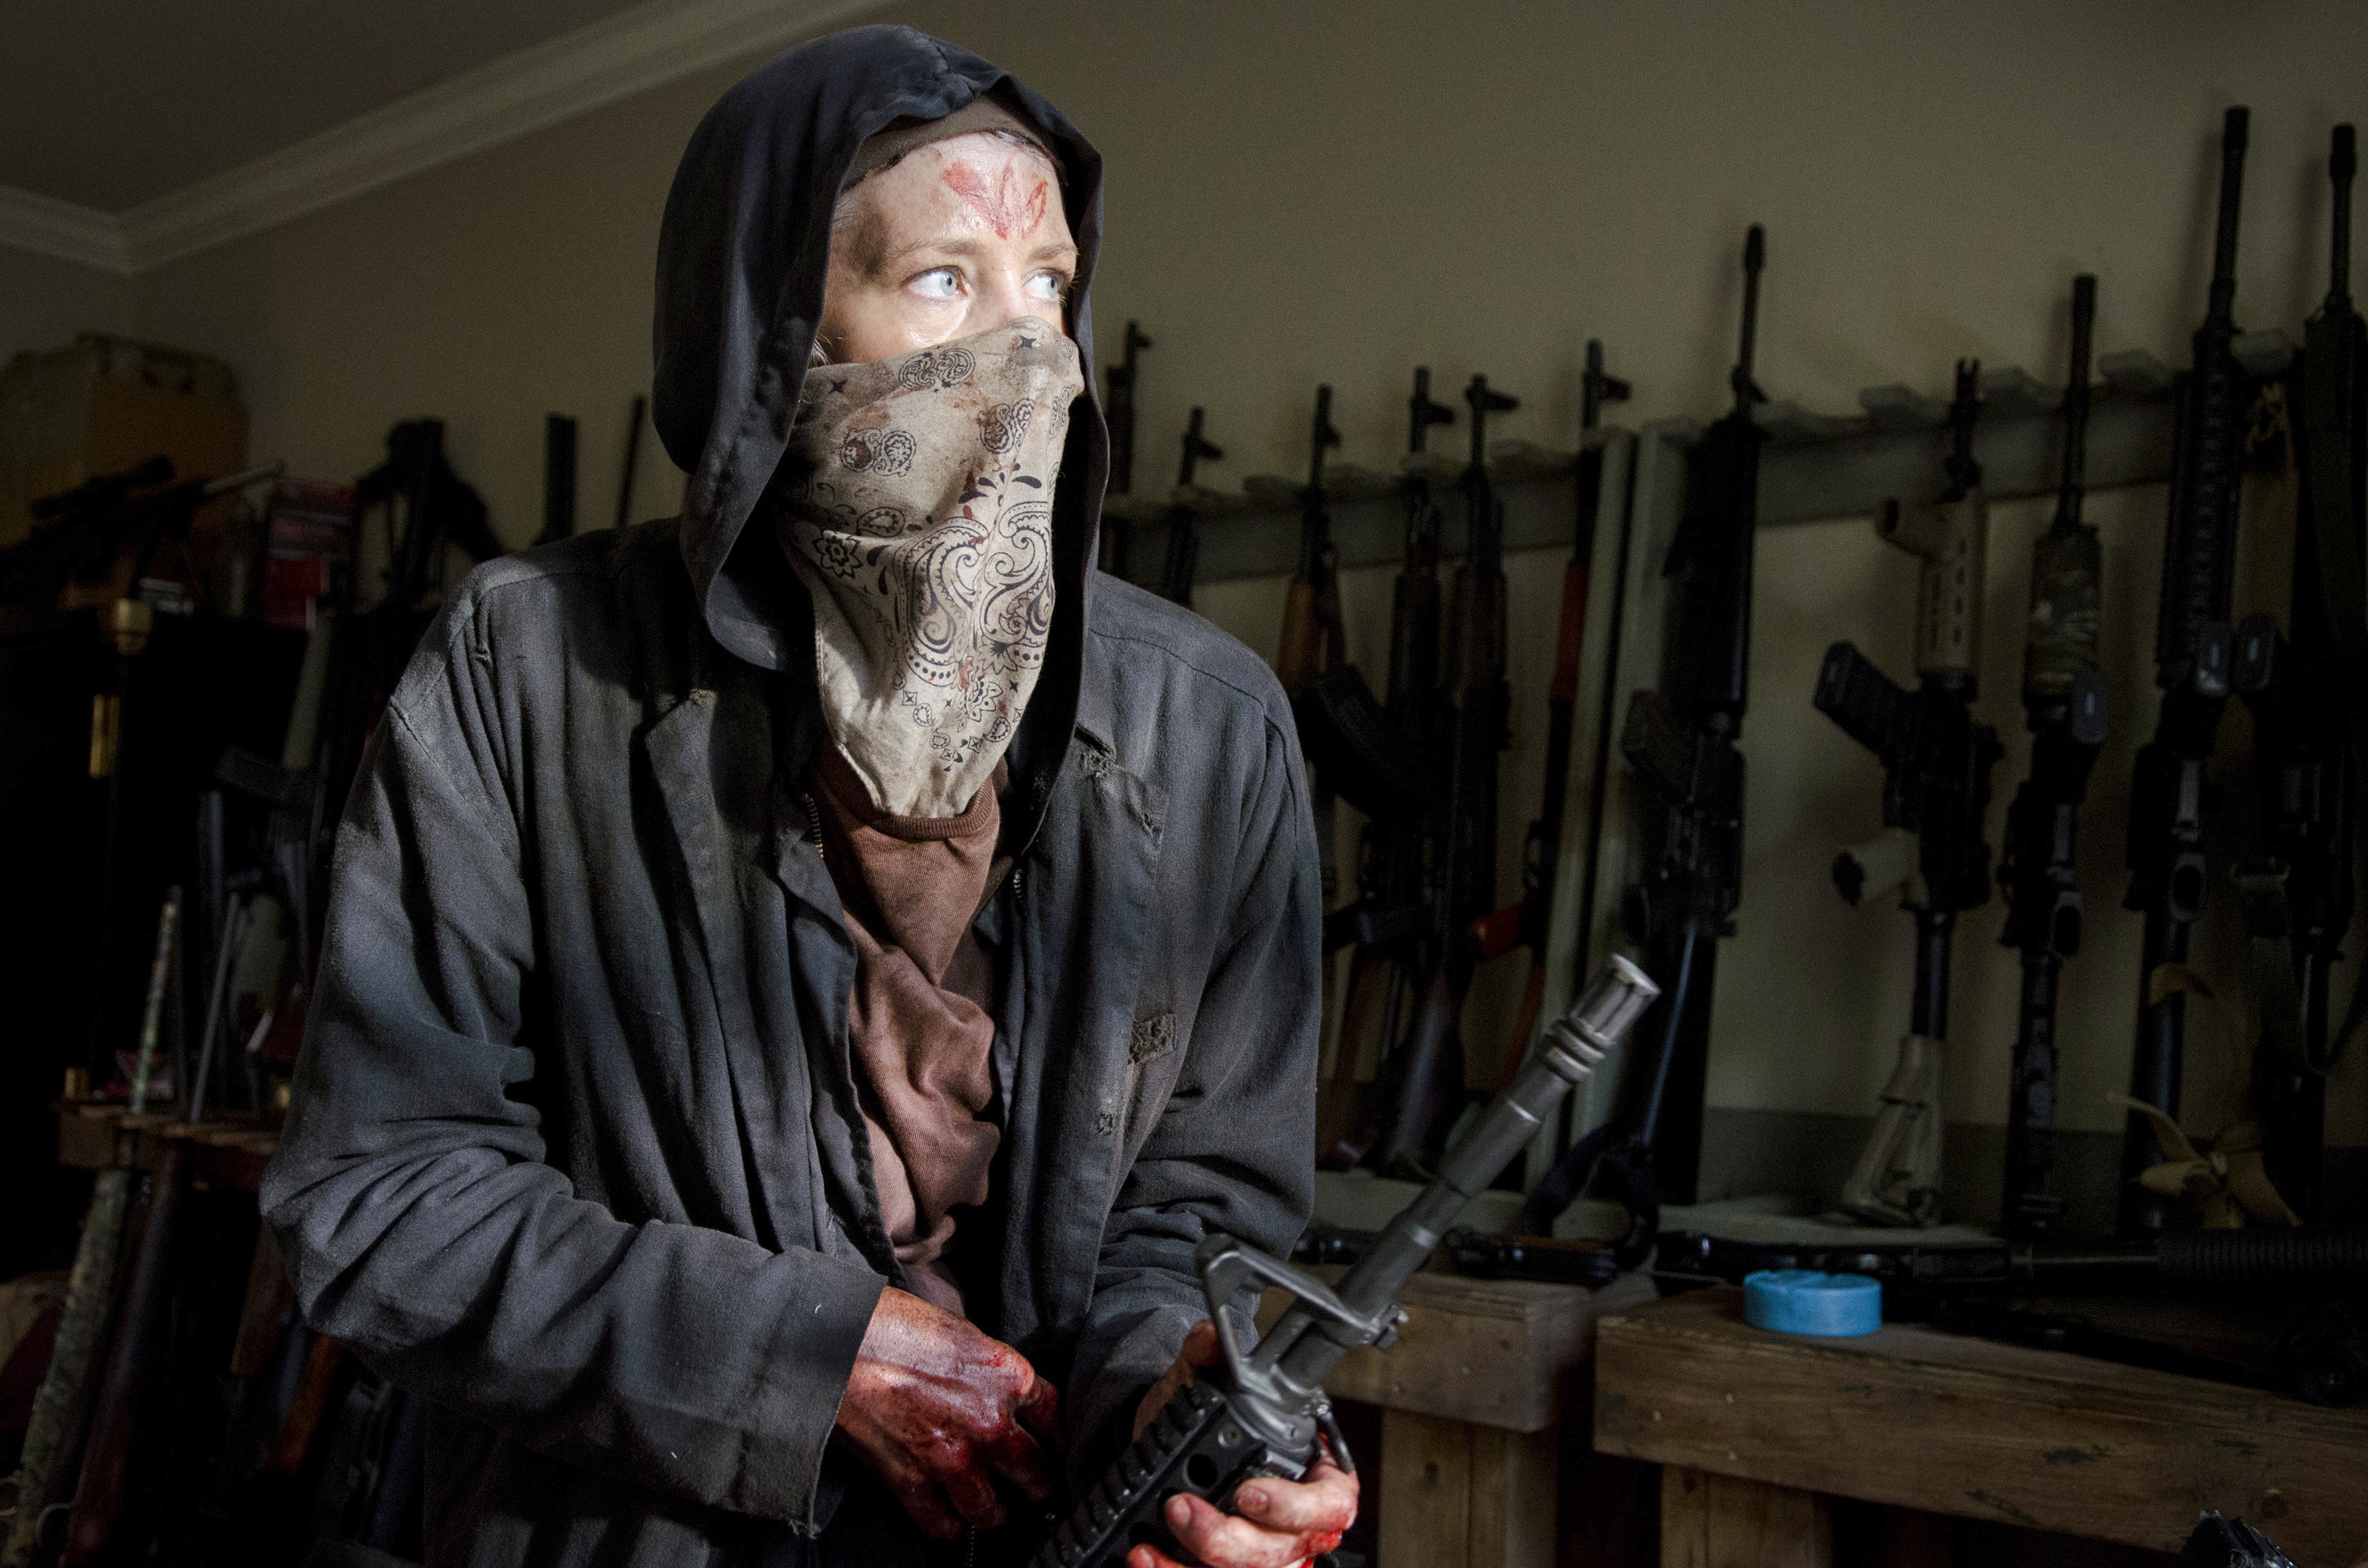 http://az801229.vo.msecnd.net/wetpaint/2015/10/Carol-Disguised-as-a-Wolf-in-The-Walking-Dead-Season-6-Episode-2.jpg